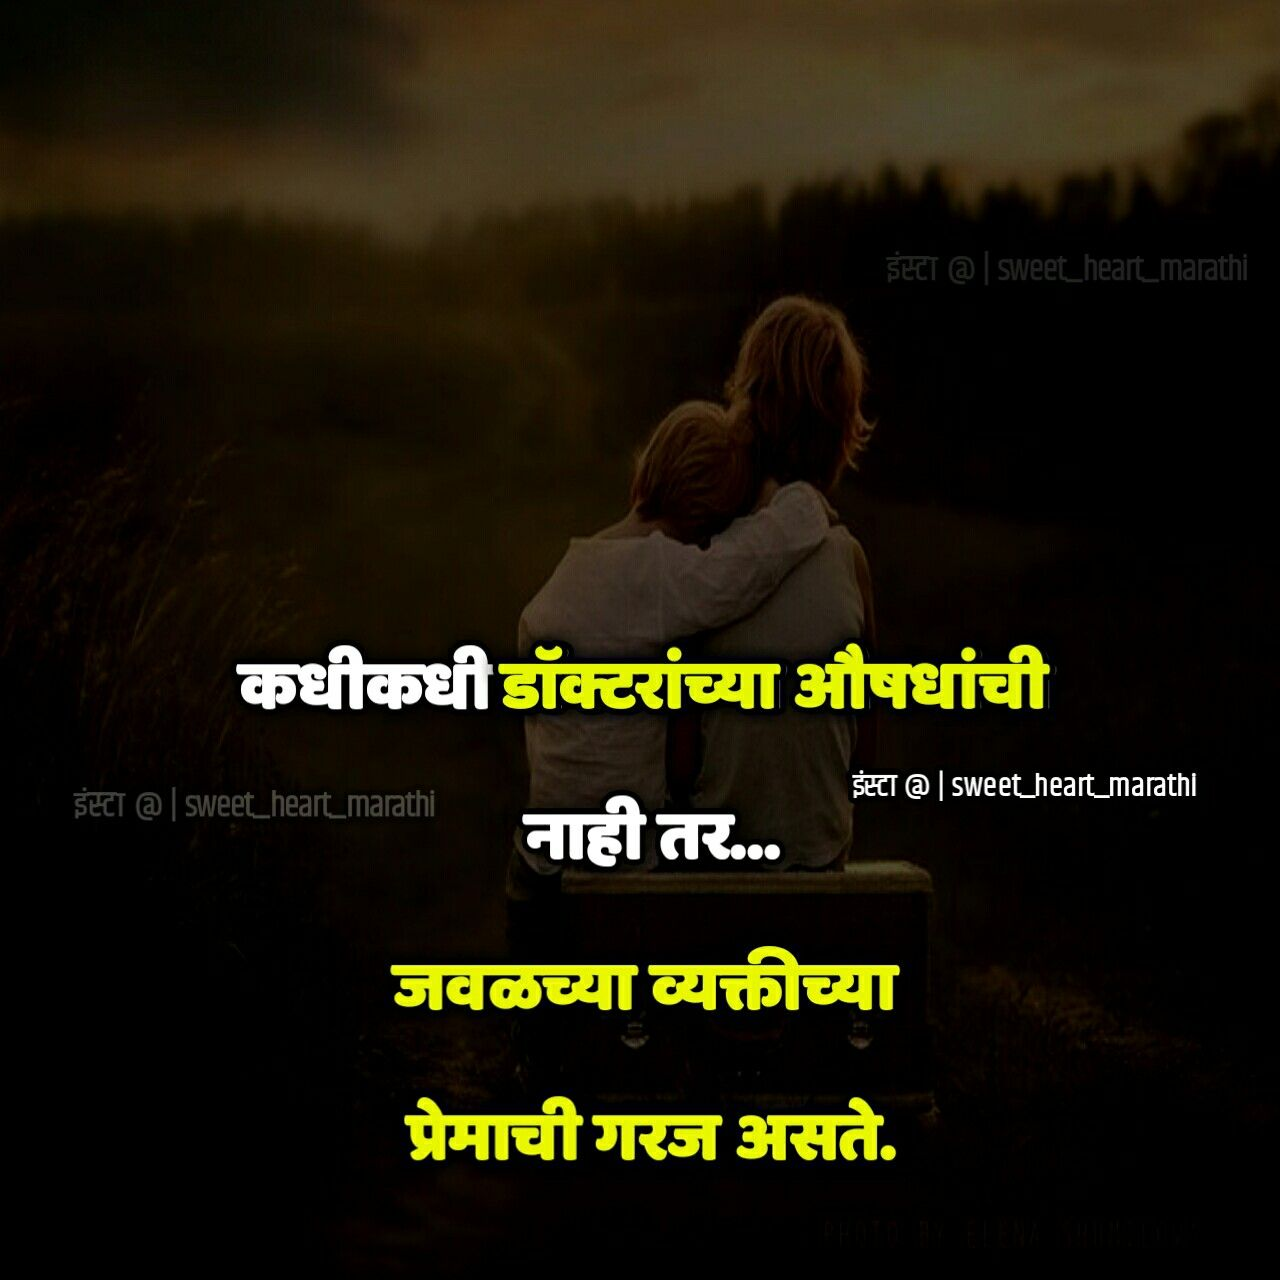 Right N Marathi Love Quotes Couple Quotes Funny Marathi Quotes